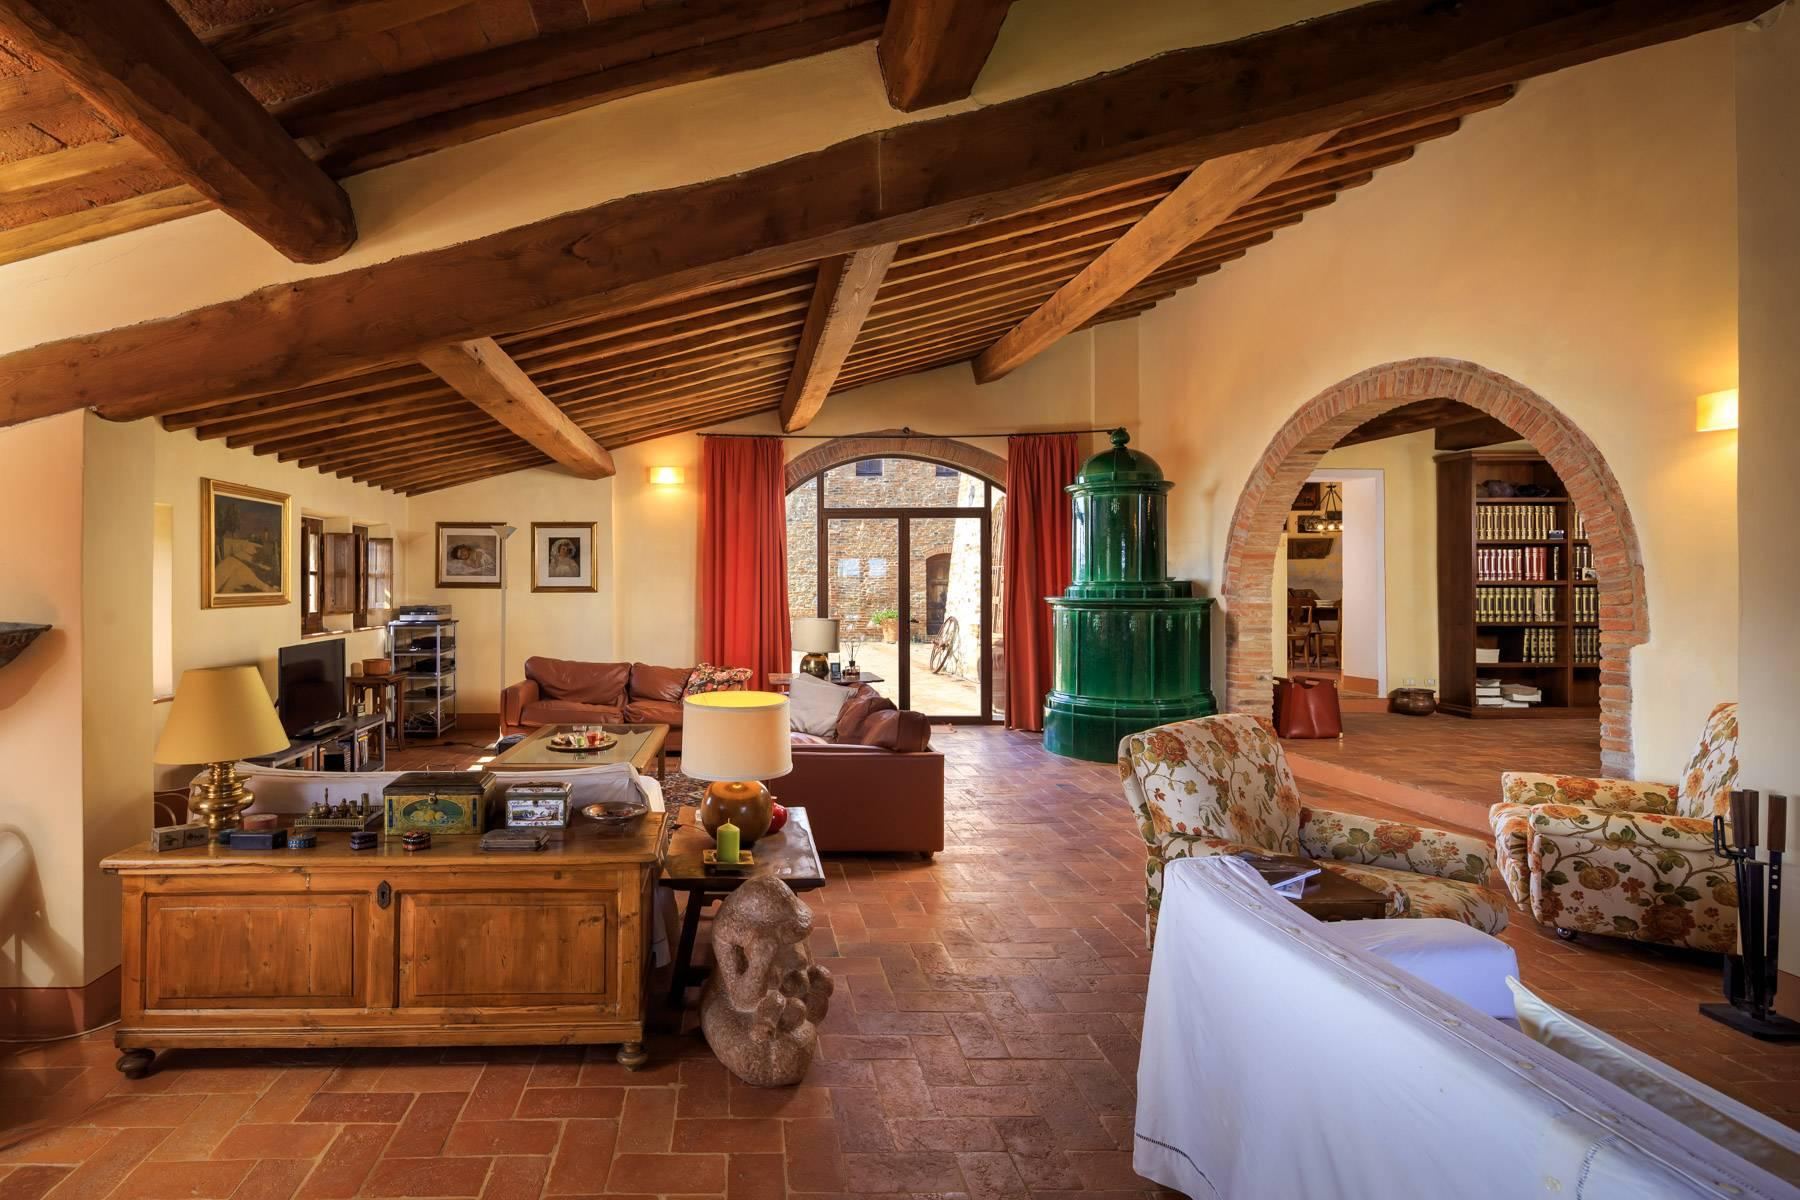 Wonderful tuscan countryhouse on the hills around Siena - 8